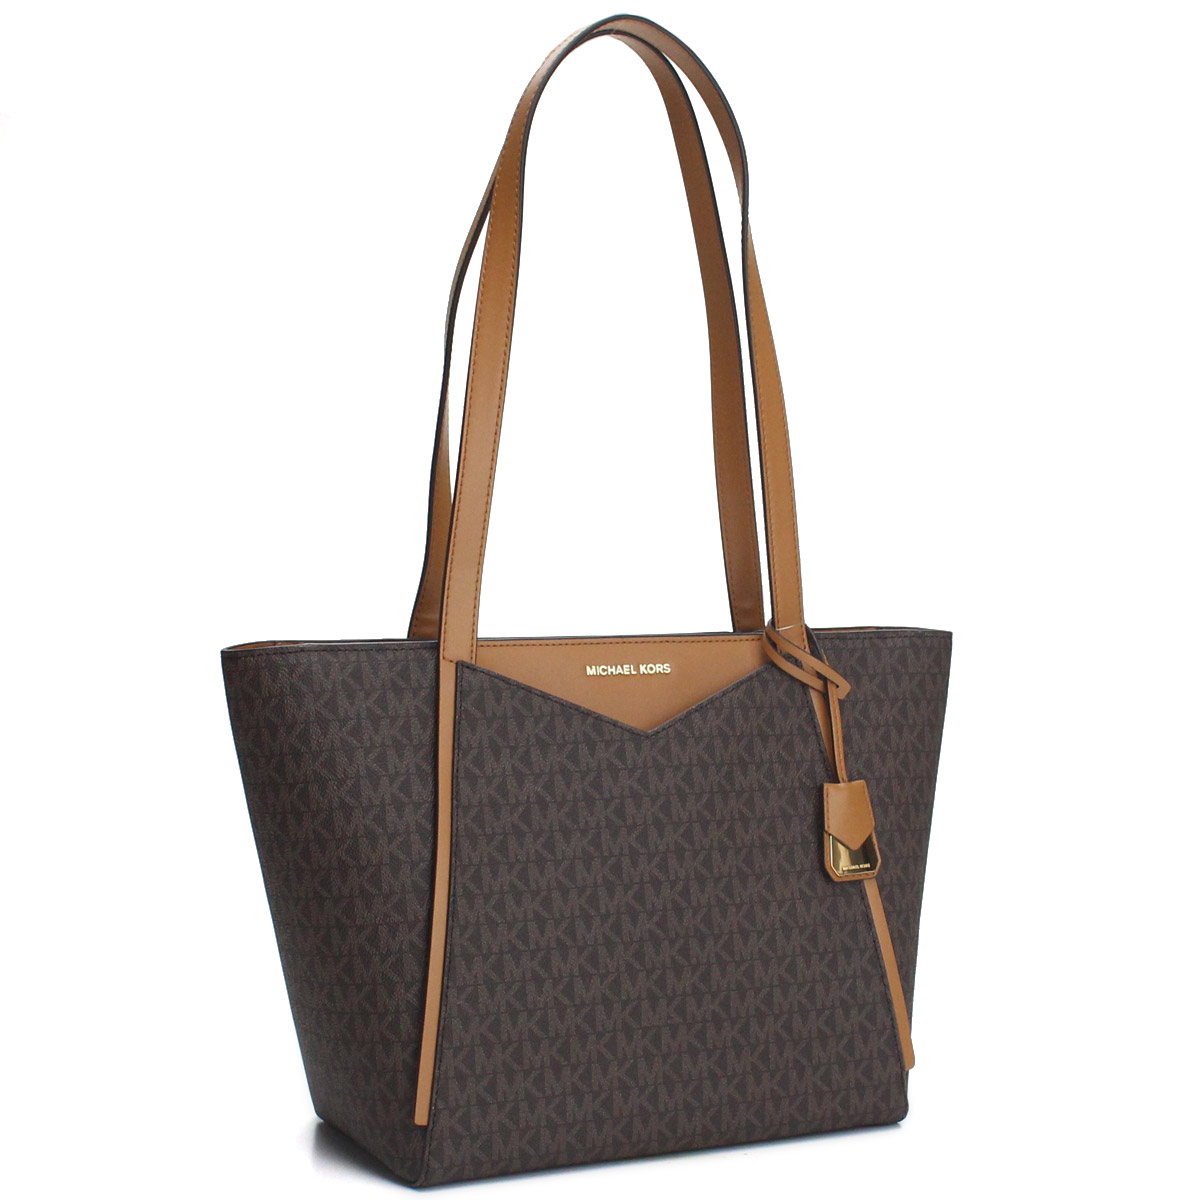 2ae73e133cbfcf Bighit The total brand wholesale: Michael Kors MICHAEL KORS M TOTE GROUPE  tote bag 30S8GN1T1B BROWN brown system | Rakuten Global Market